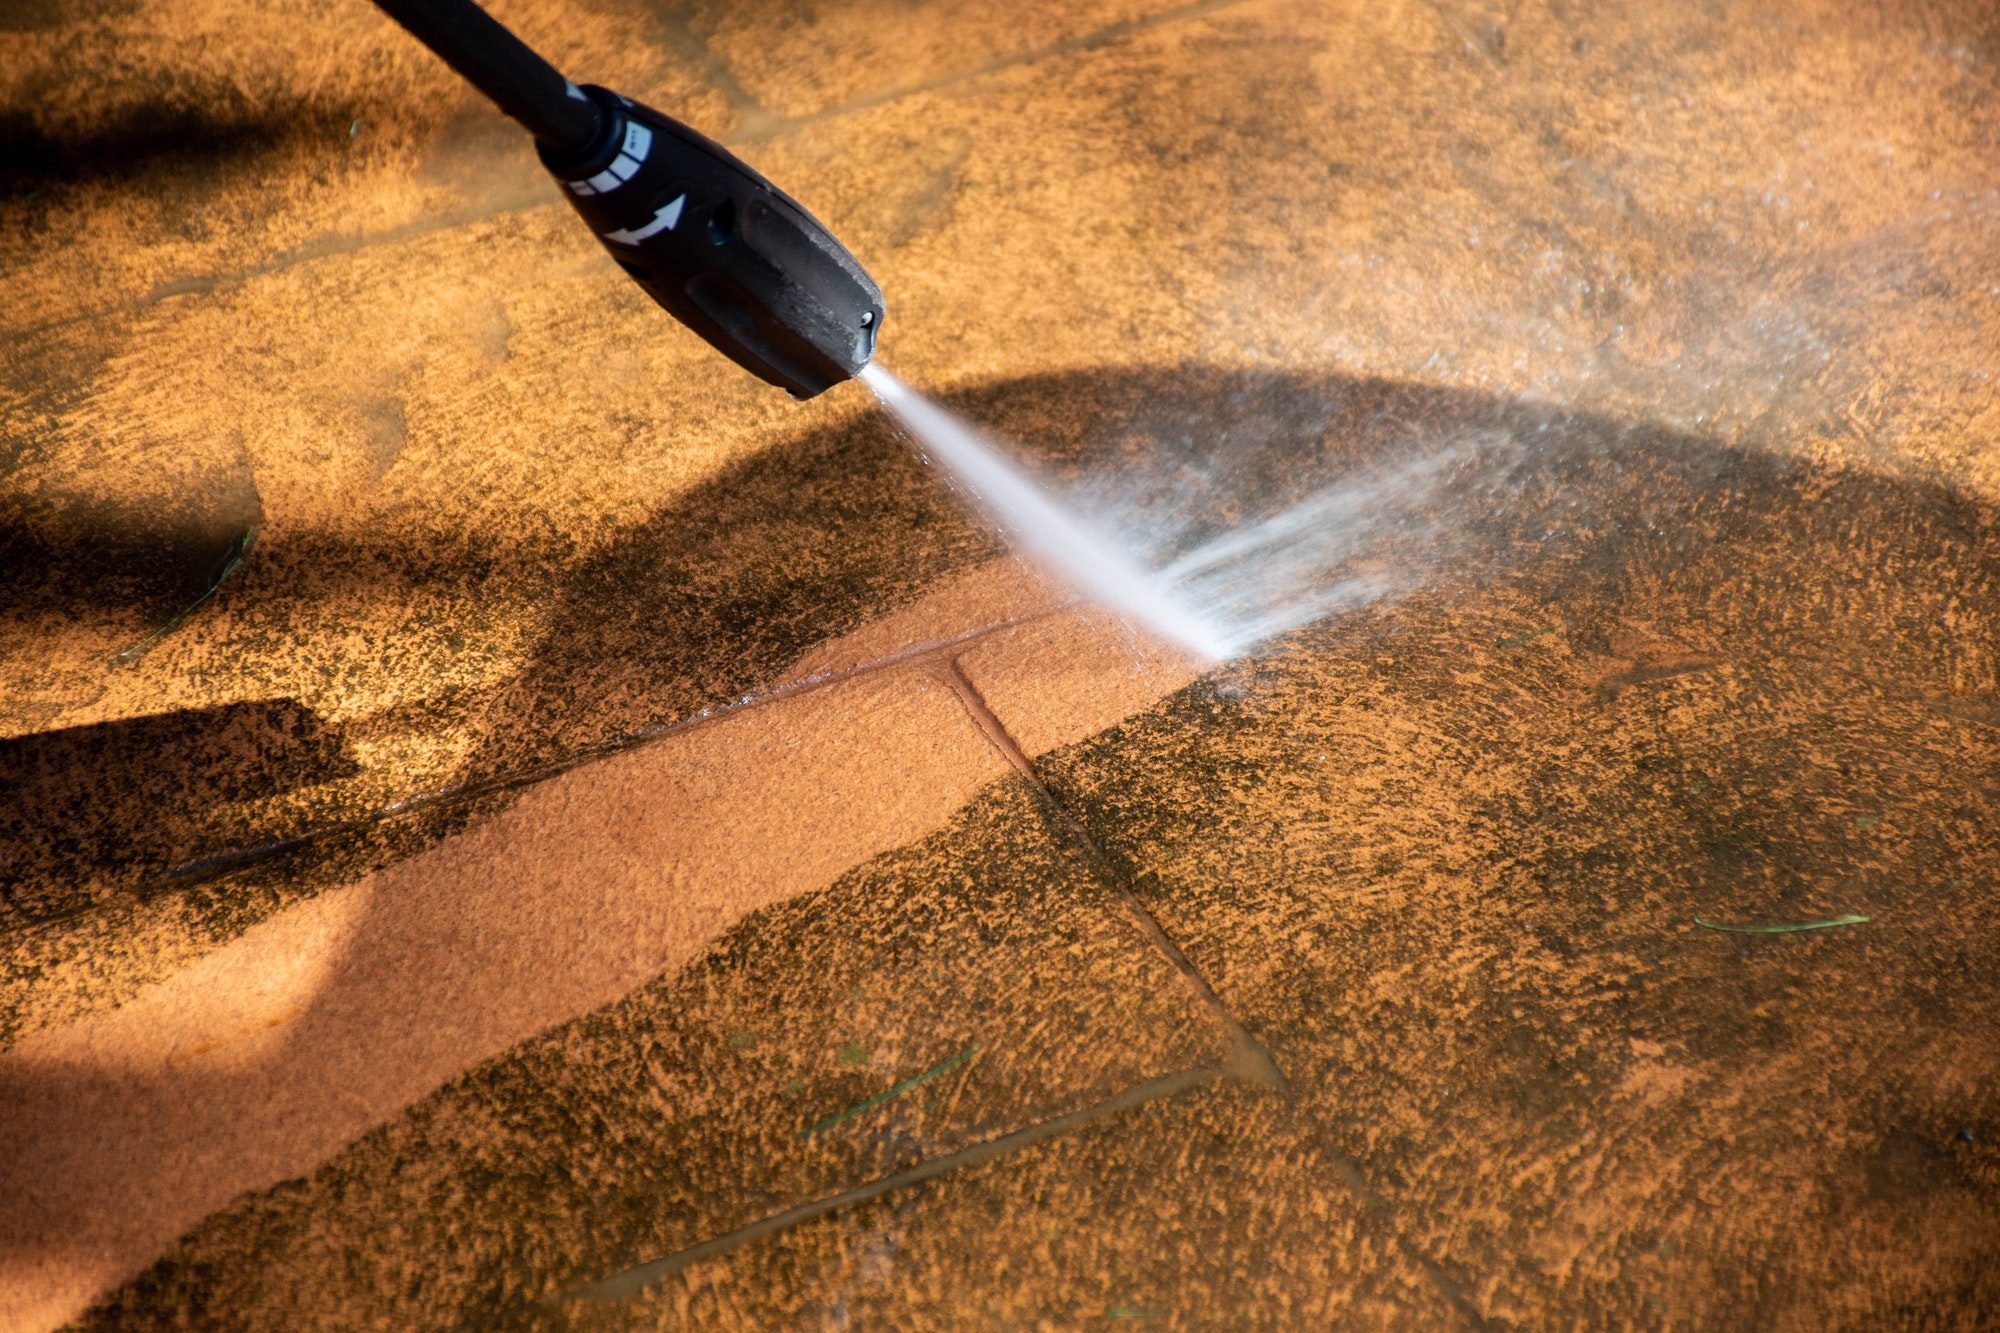 Washing the backyard tiles with high pressure cleaner